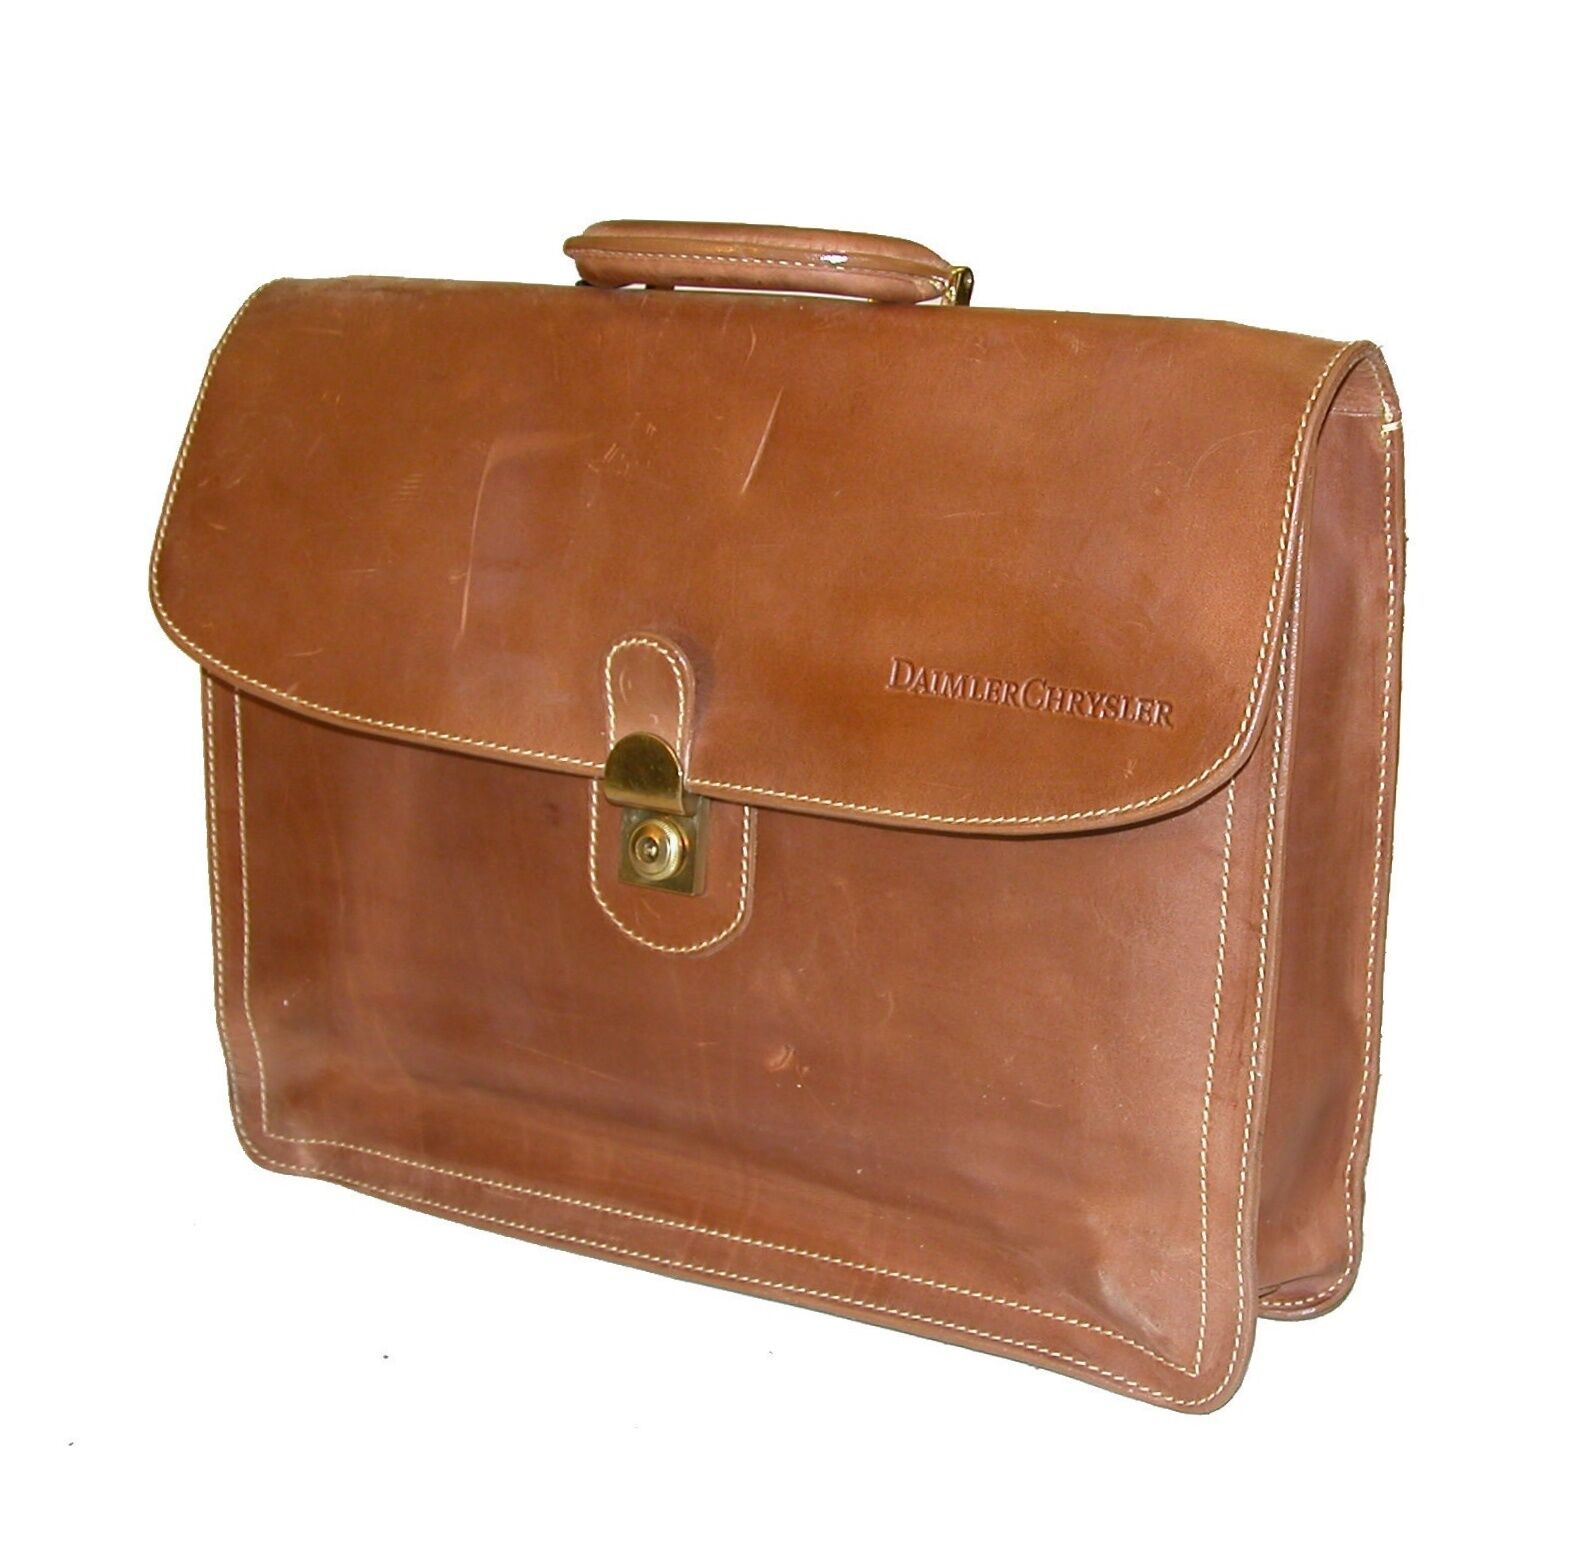 Mulholland Holland Brossohers 4 Dai er Chrysler 16 All Leather Lawyer Briefcase